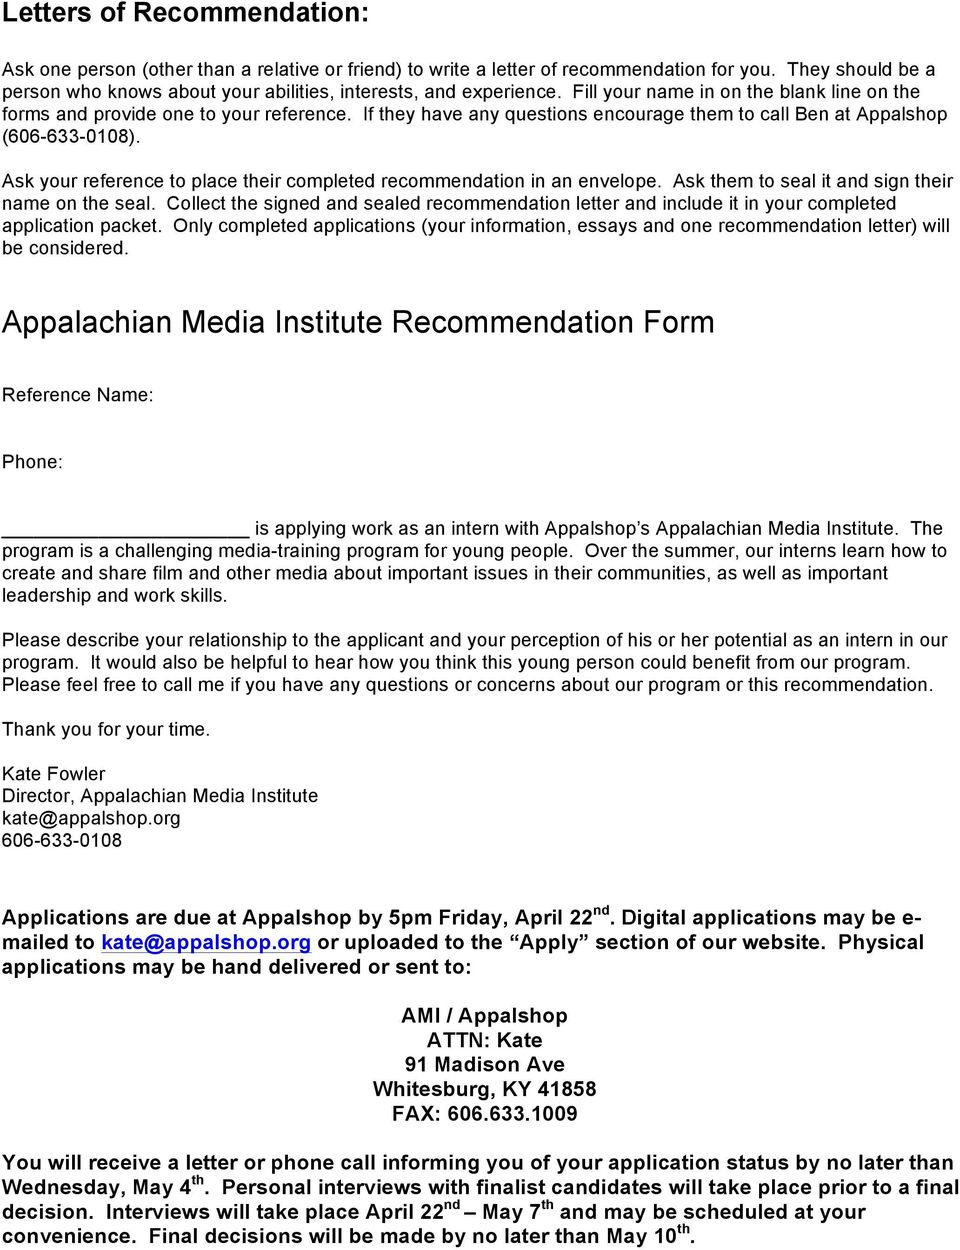 To learn more about AMI and Appalshop check out our website